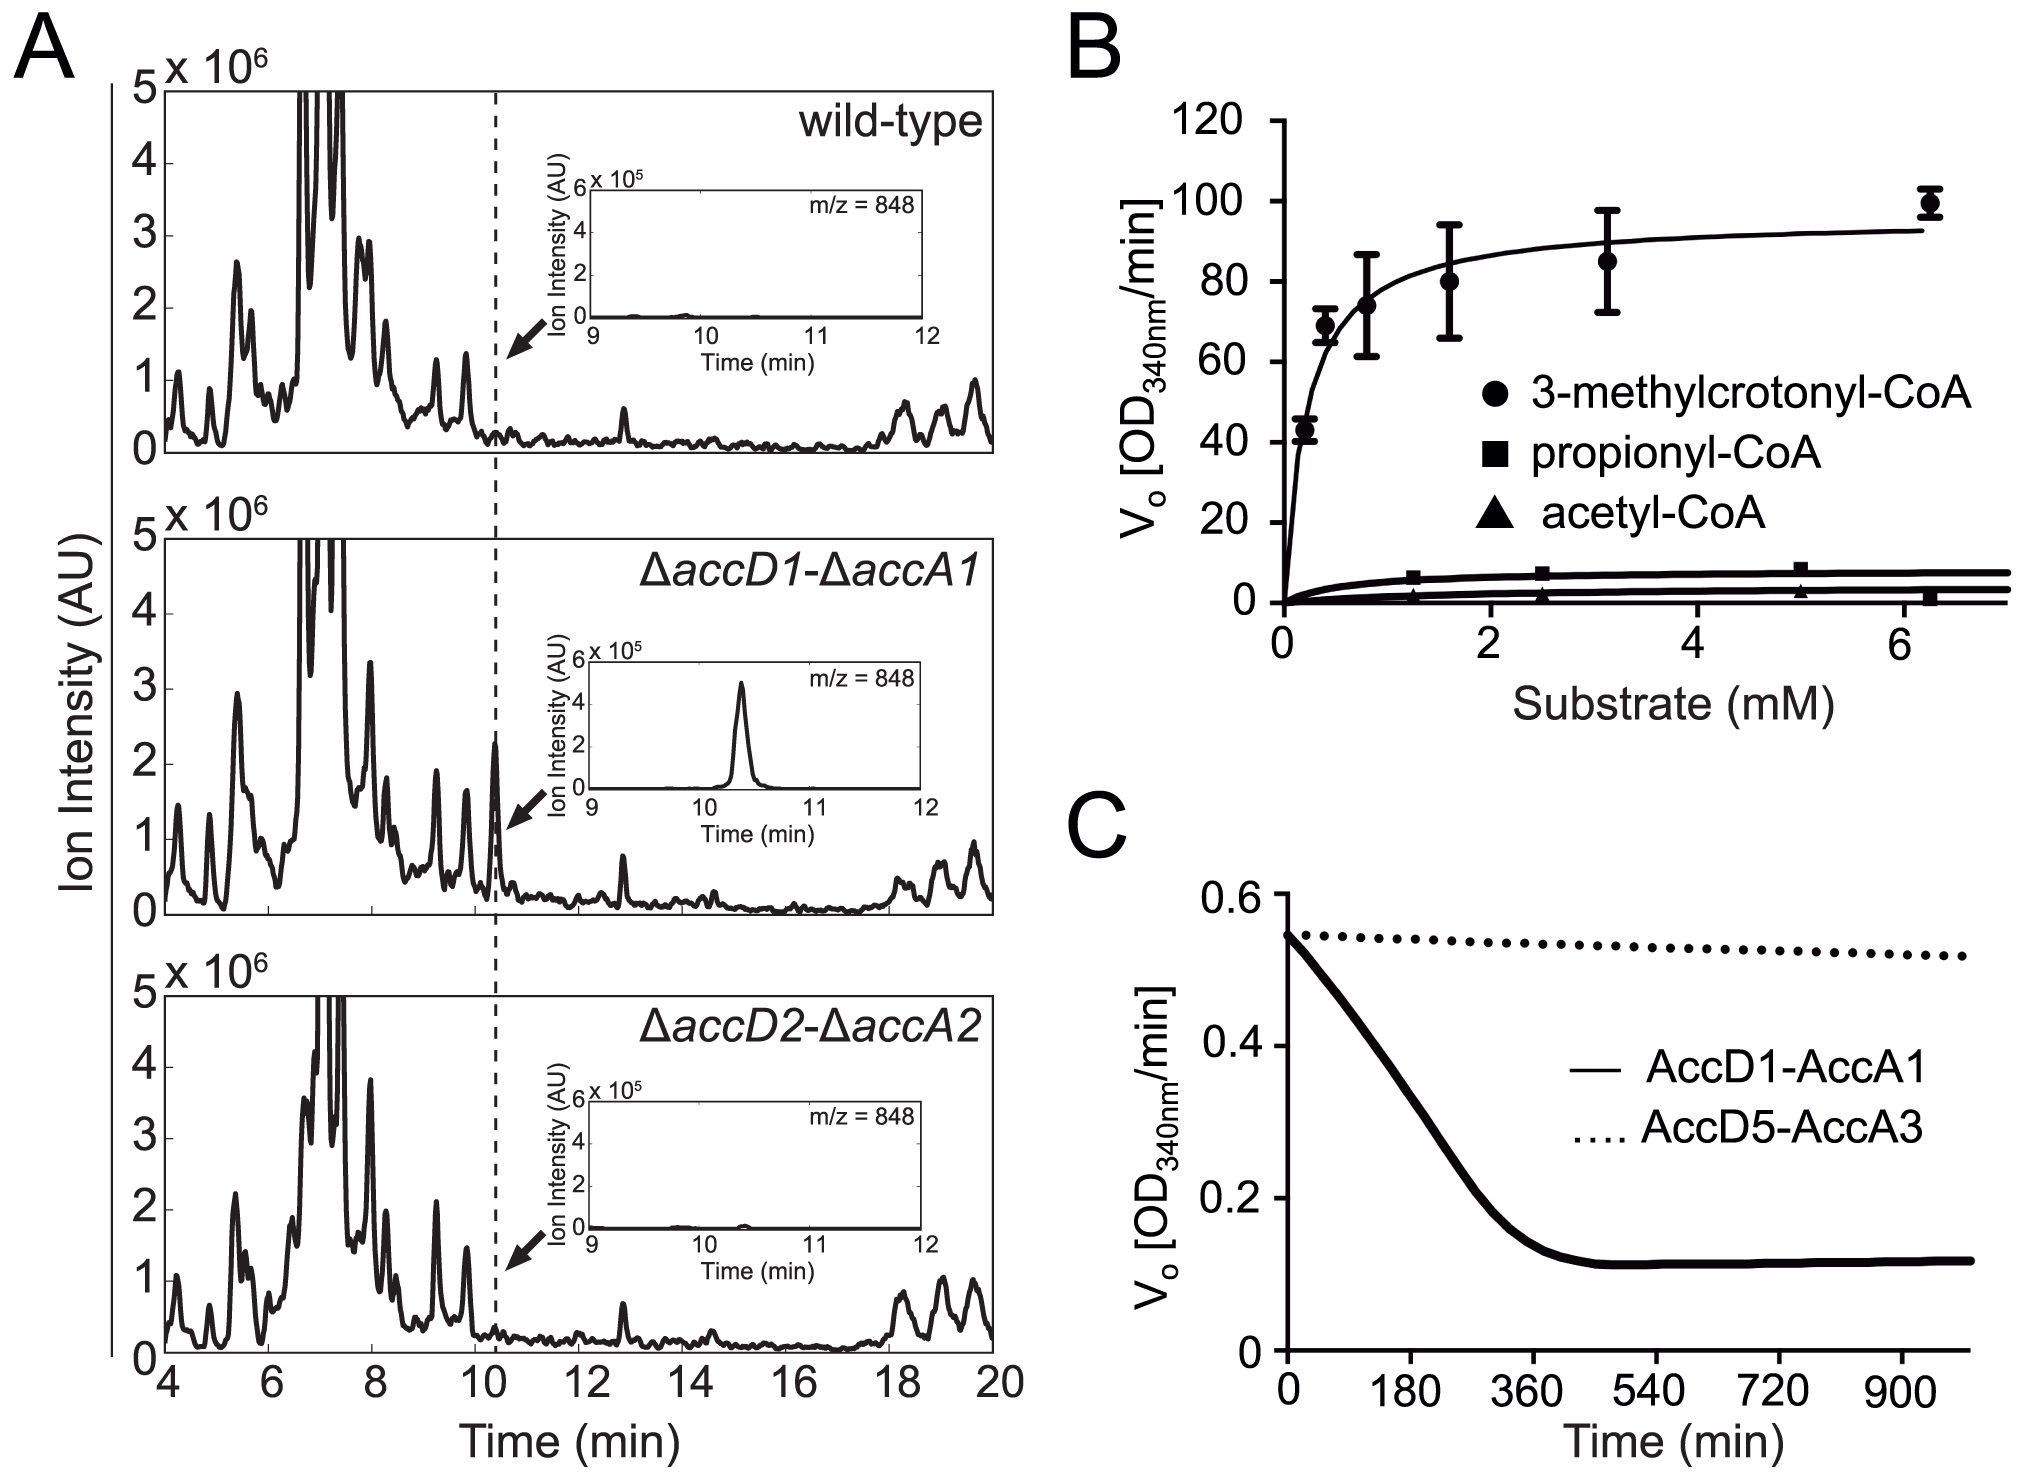 Identification and biochemical characterization of the AccD1-AccA1 substrate 3-methylcrotonyl-CoA.